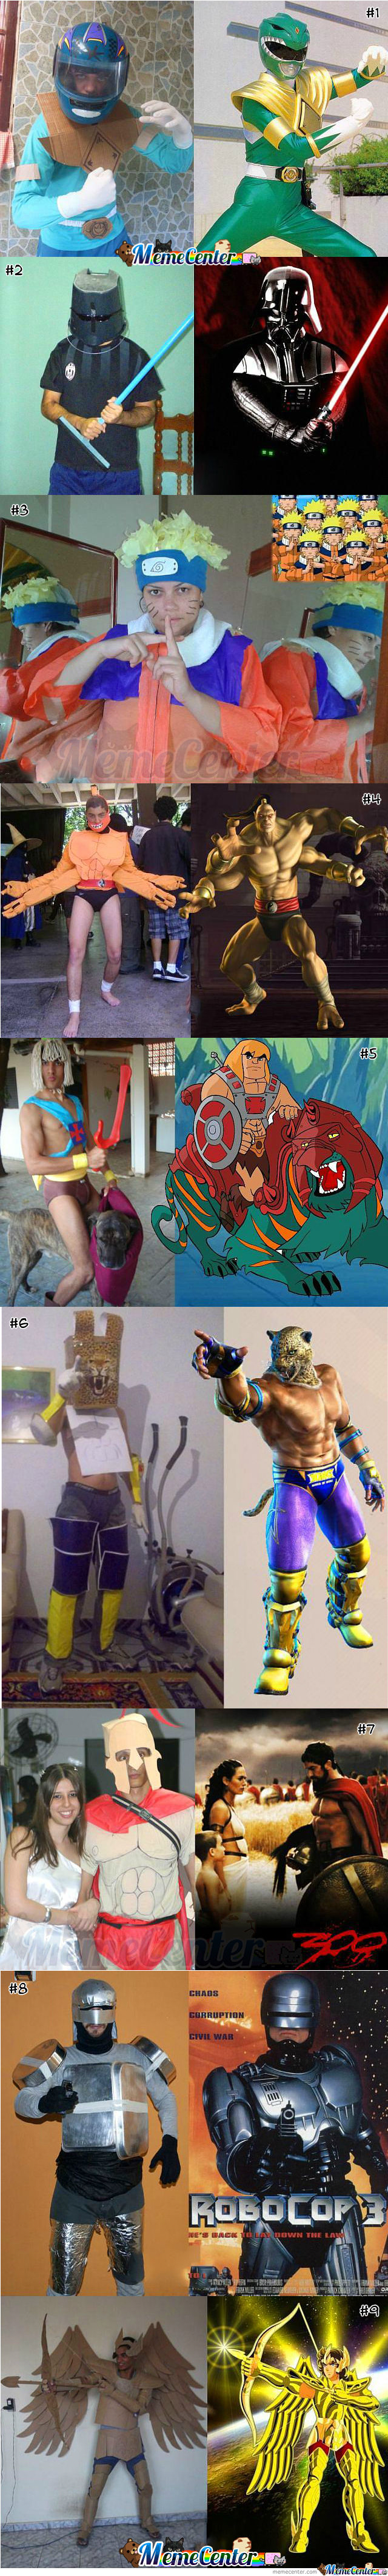 Low Budget, Creative Cosplay : Part 1